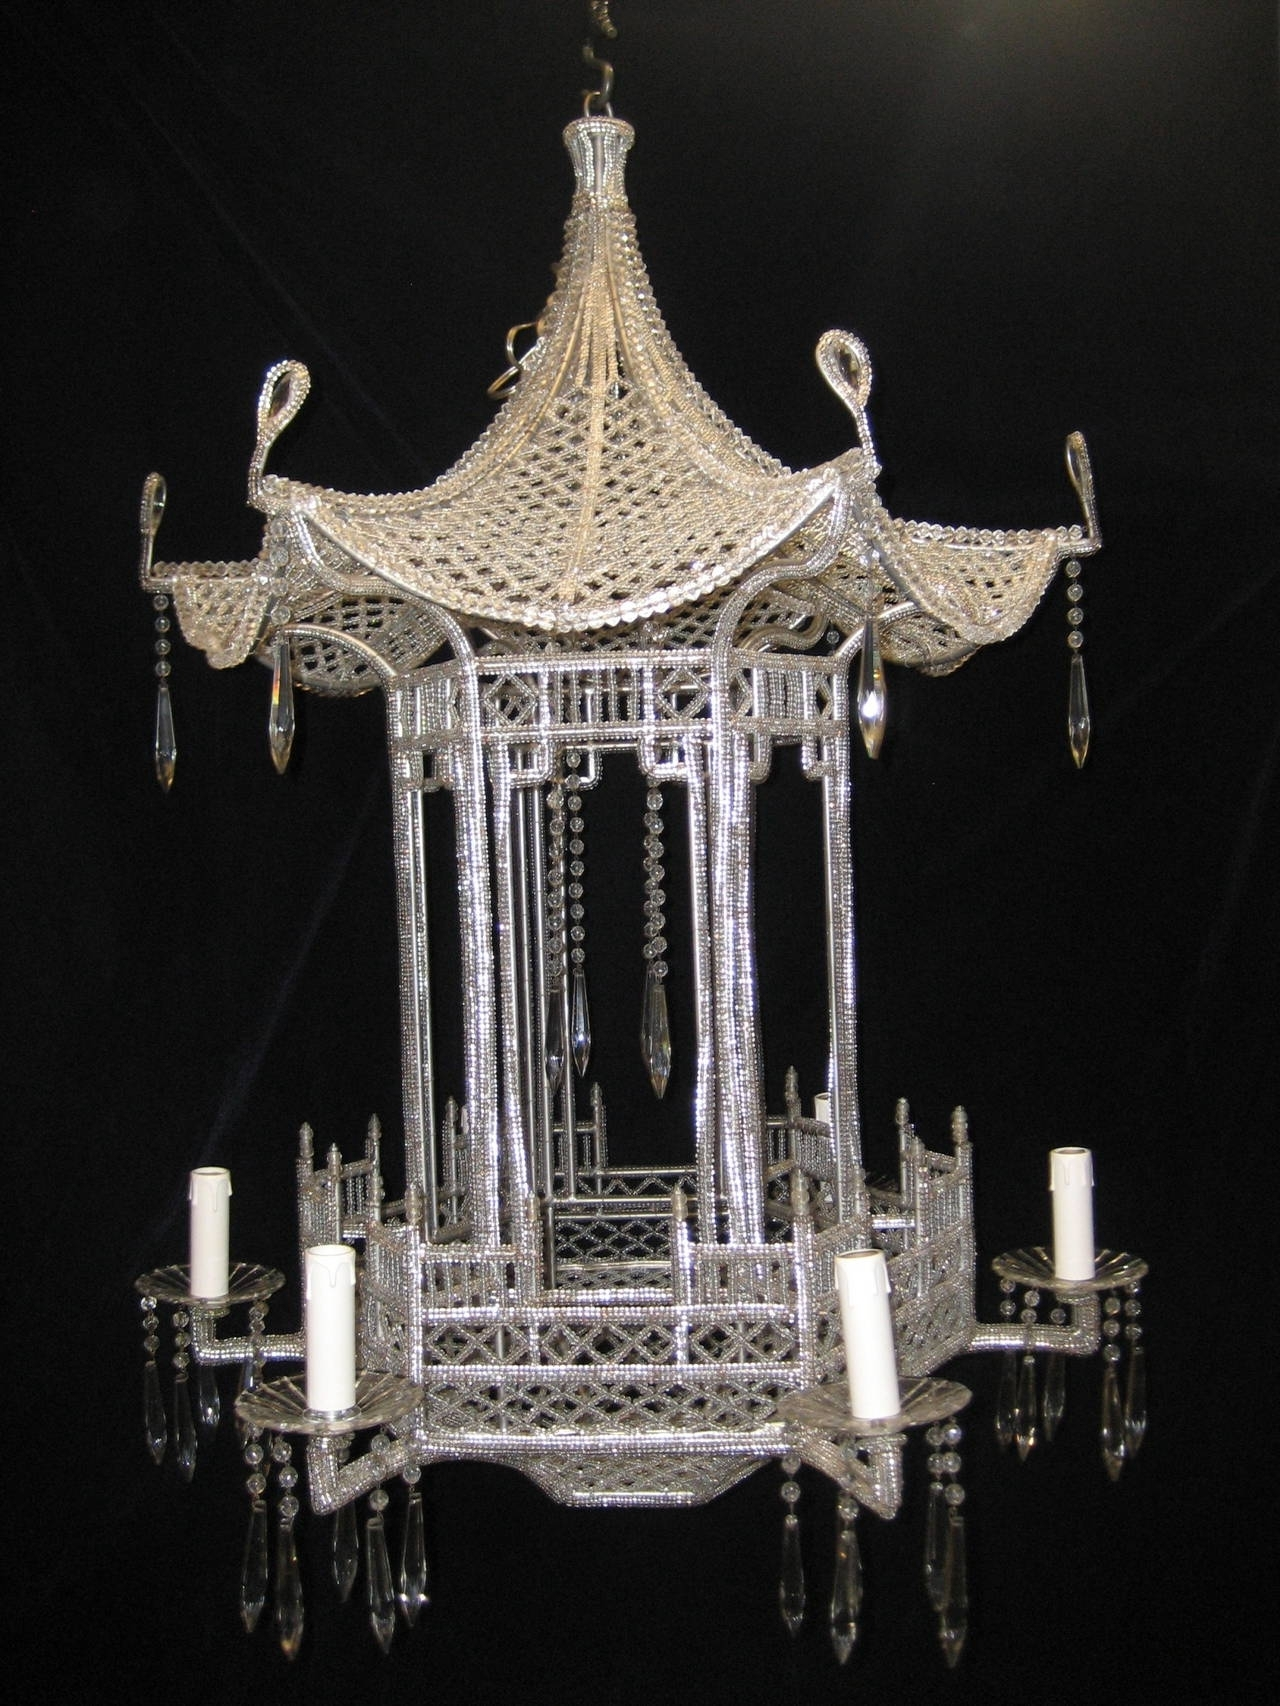 2018 Pair Of Italian Chinoiserie Pagoda Form Beaded Glass And Crystal Within Chinoiserie Chandeliers (View 1 of 15)